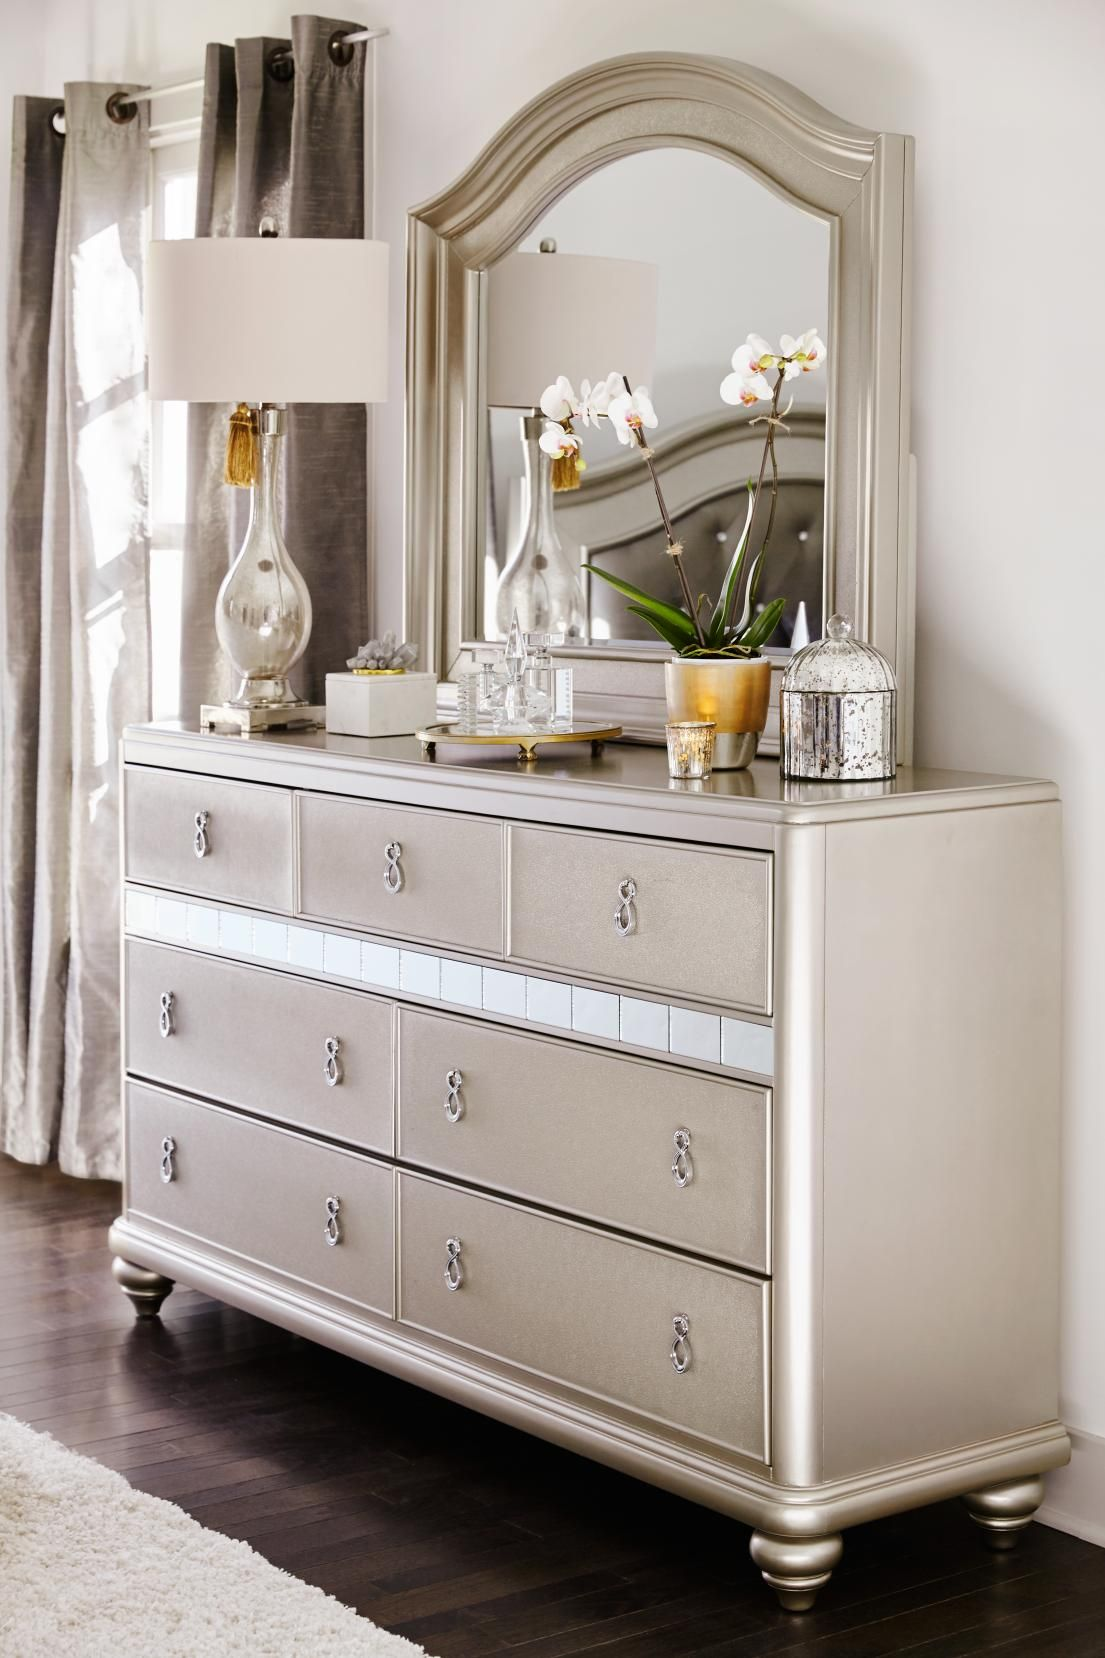 Super Glam Dresser With Mirror From Our Serena Collection Only At Value City Furniture